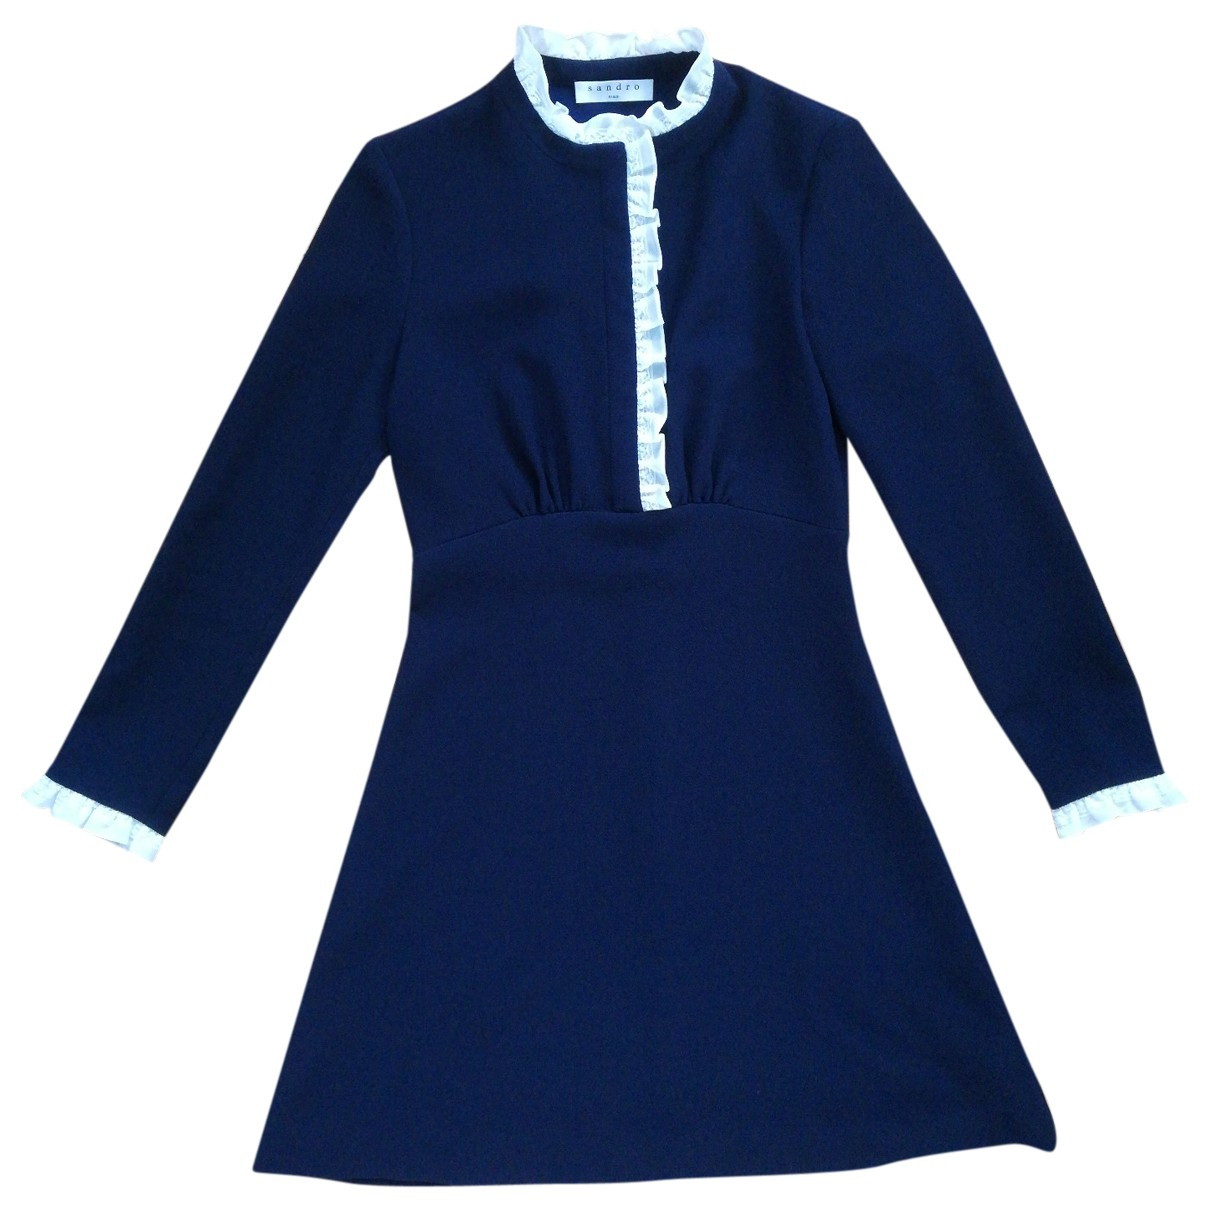 Sandro \N Blue dress for Women 1 0-5